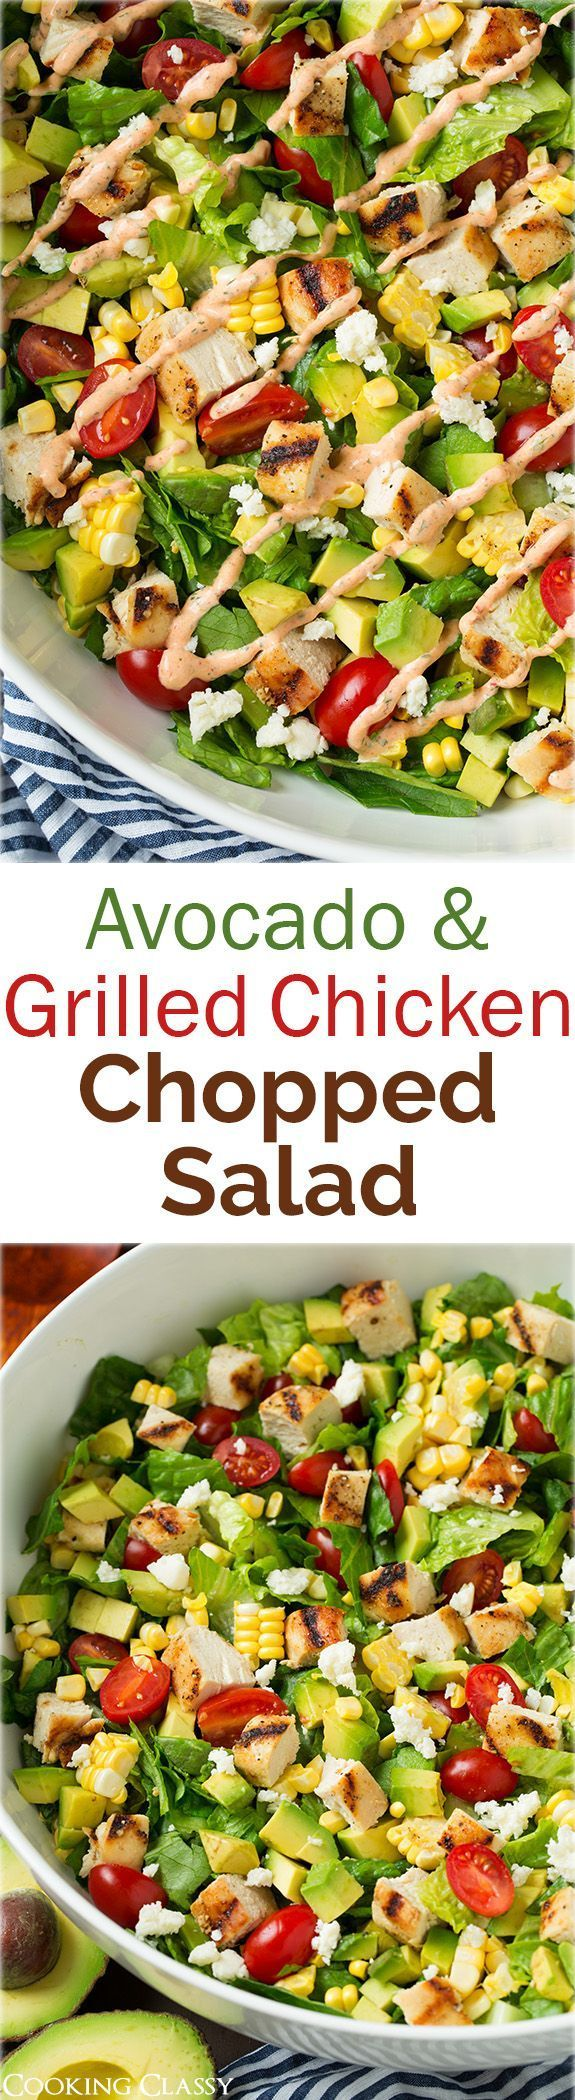 Avocado and Grilled Chicken Chopped Salad with Skinny Chipotle-Lime Ranch - I could eat this salad every single day! It was SO good! Used the left over ranch to dip chicken tenders in.